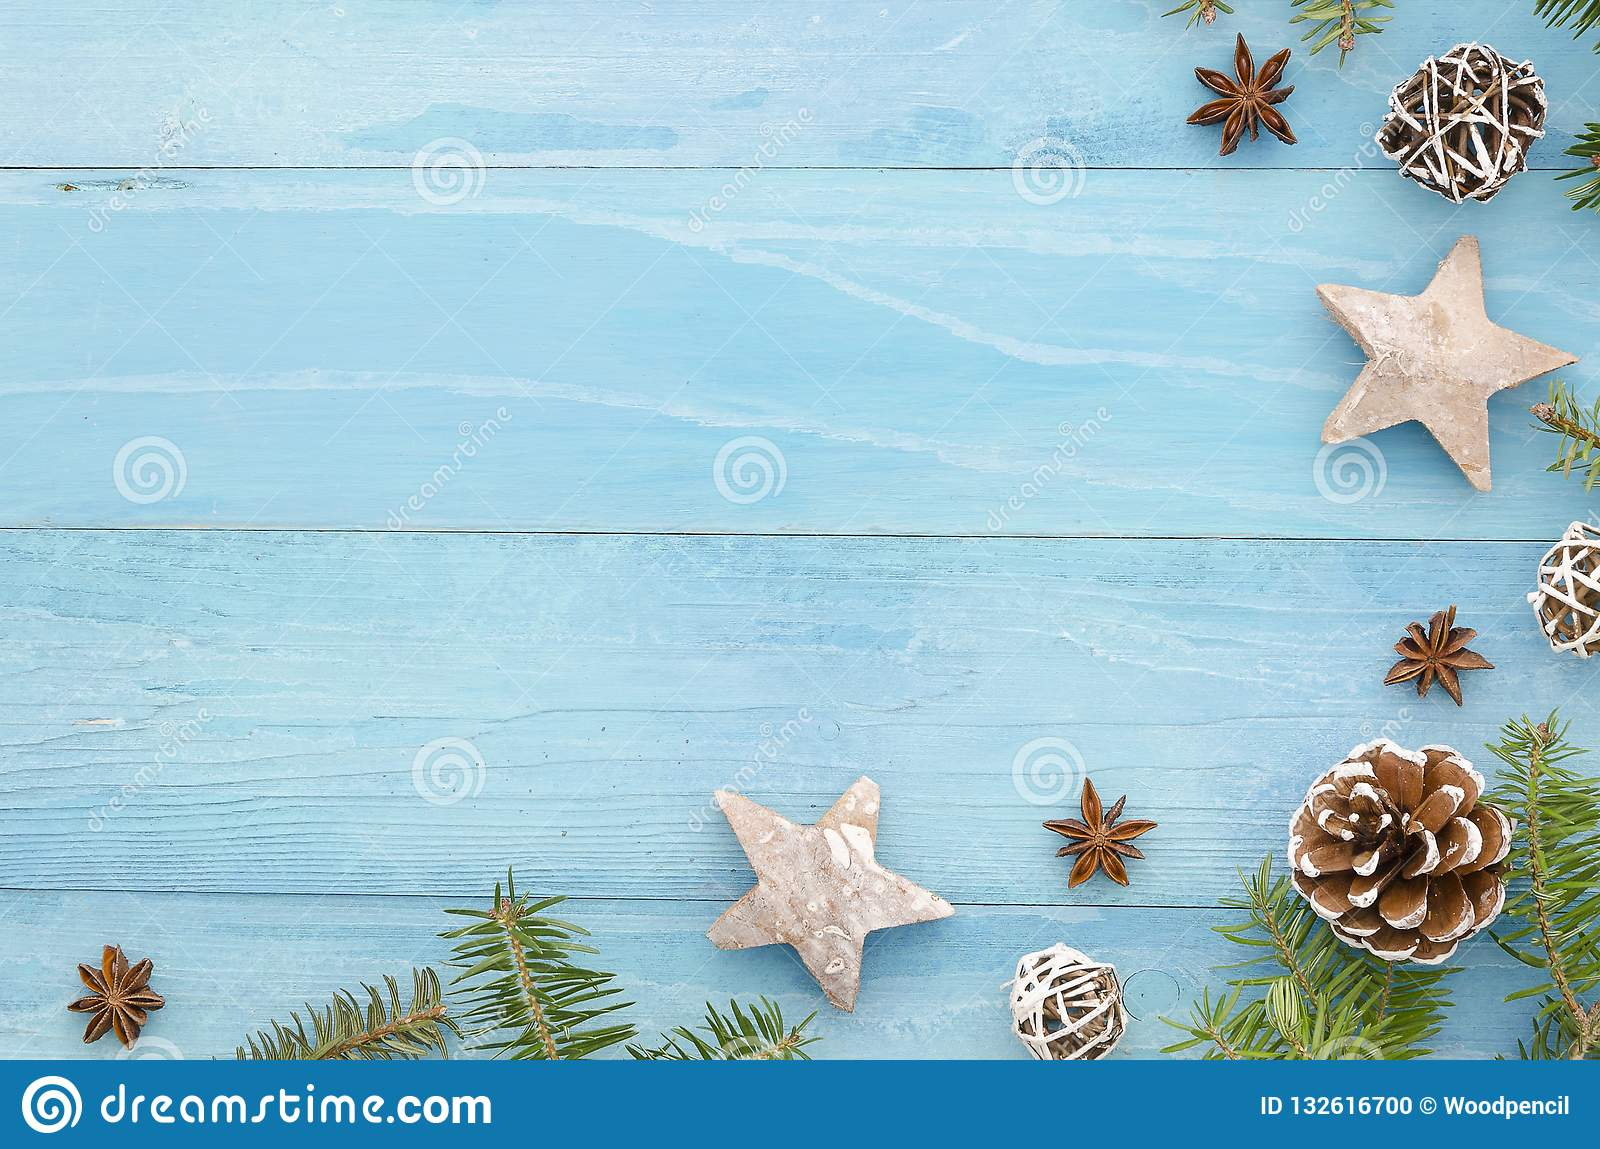 Christmas Coner Frame Rustic Blue Wooden Panks With Christmas Tree Anice Star Pine Cones And Fir Tree Winter Holiday Stock Photo Image Of Decoration Frame 132616700